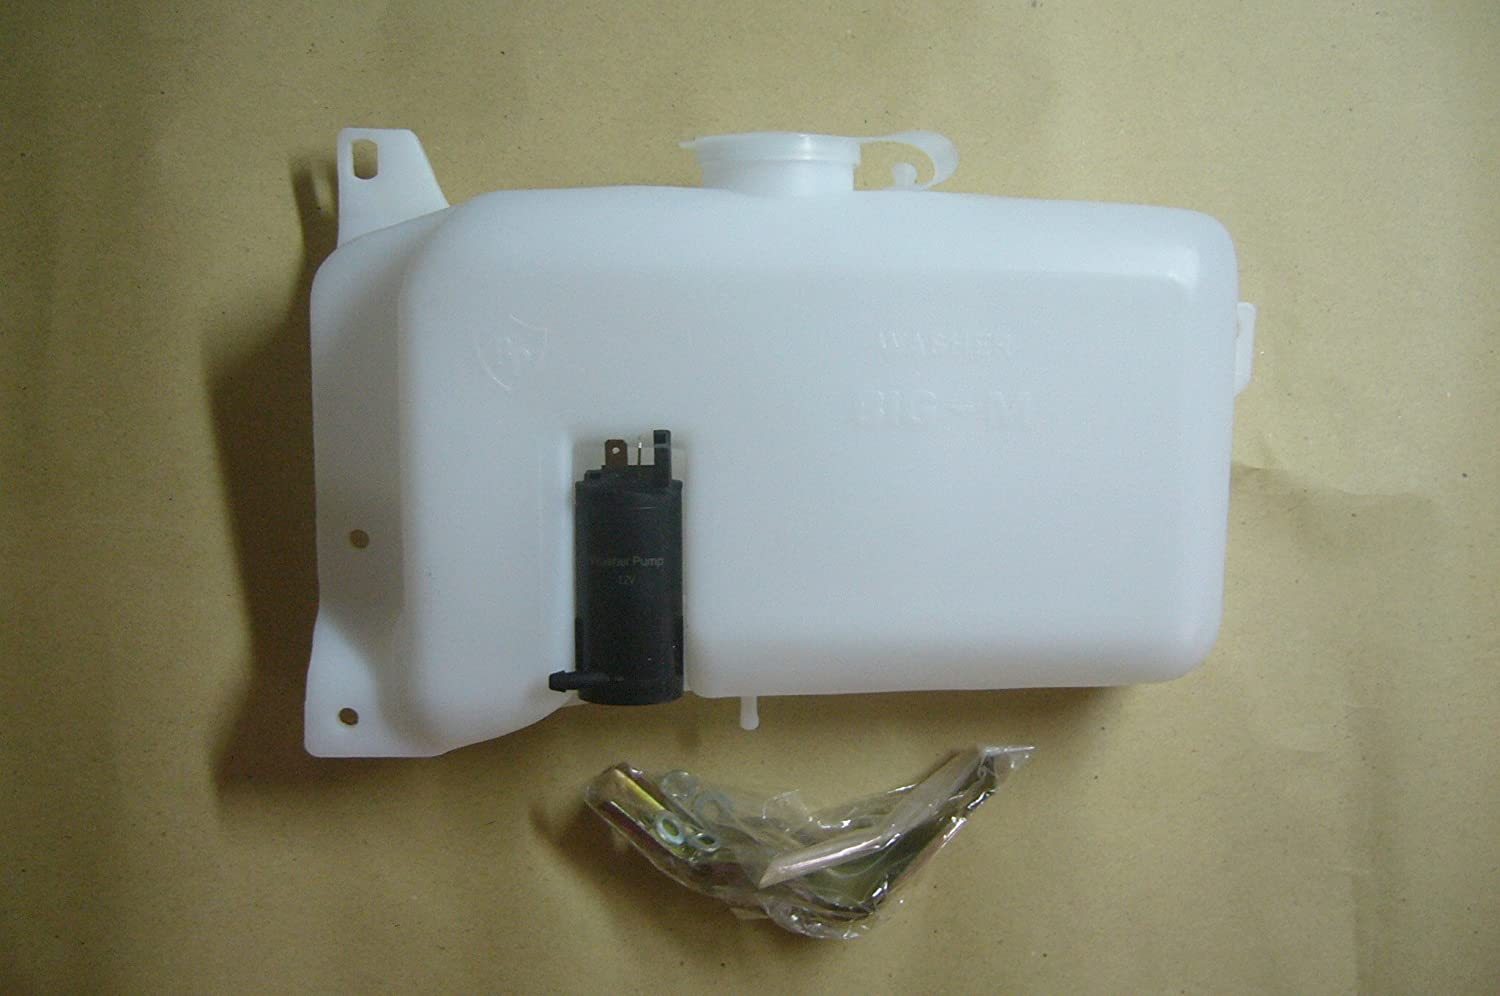 985de363a20c3 Motorstorex Windshield washer tank 12V pump for Nissan Datsun Hardbody  Terrano D21 Pickup Truck ...